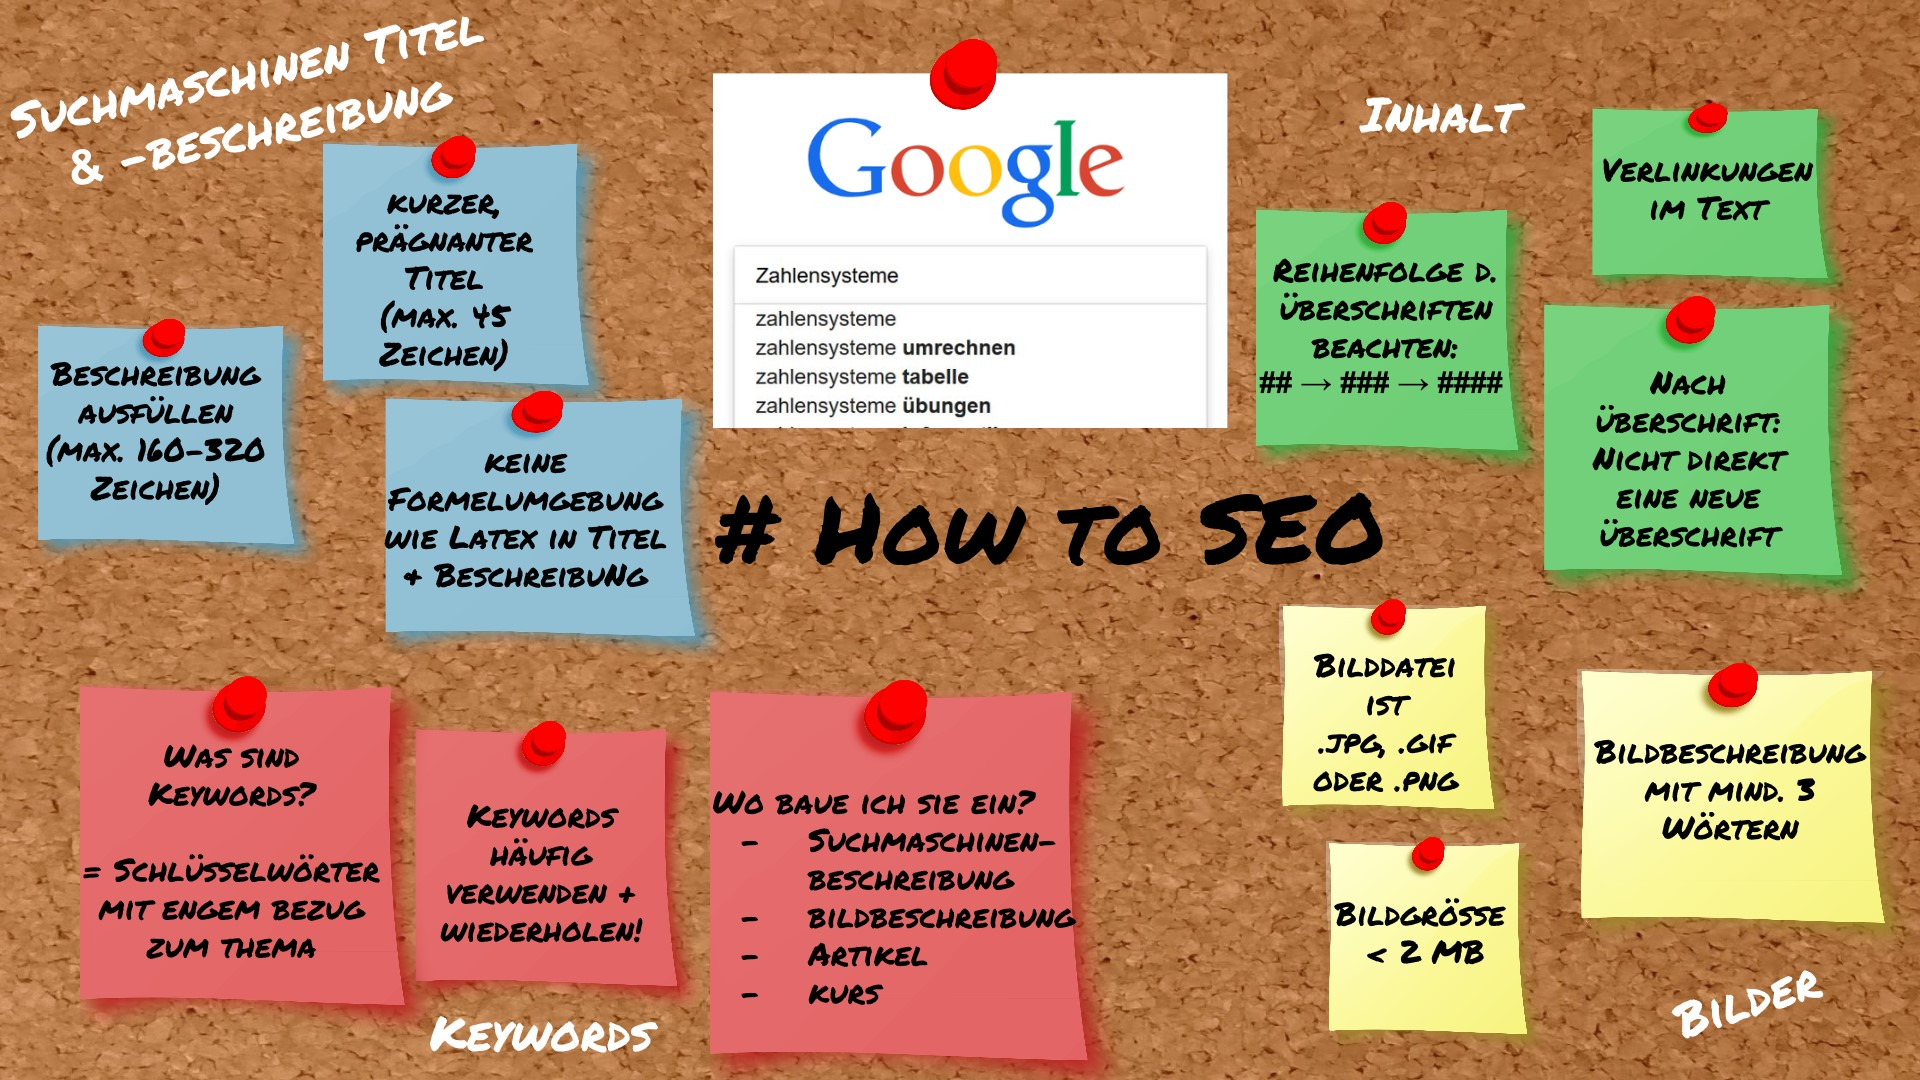 Checkliste #HowtoSEO